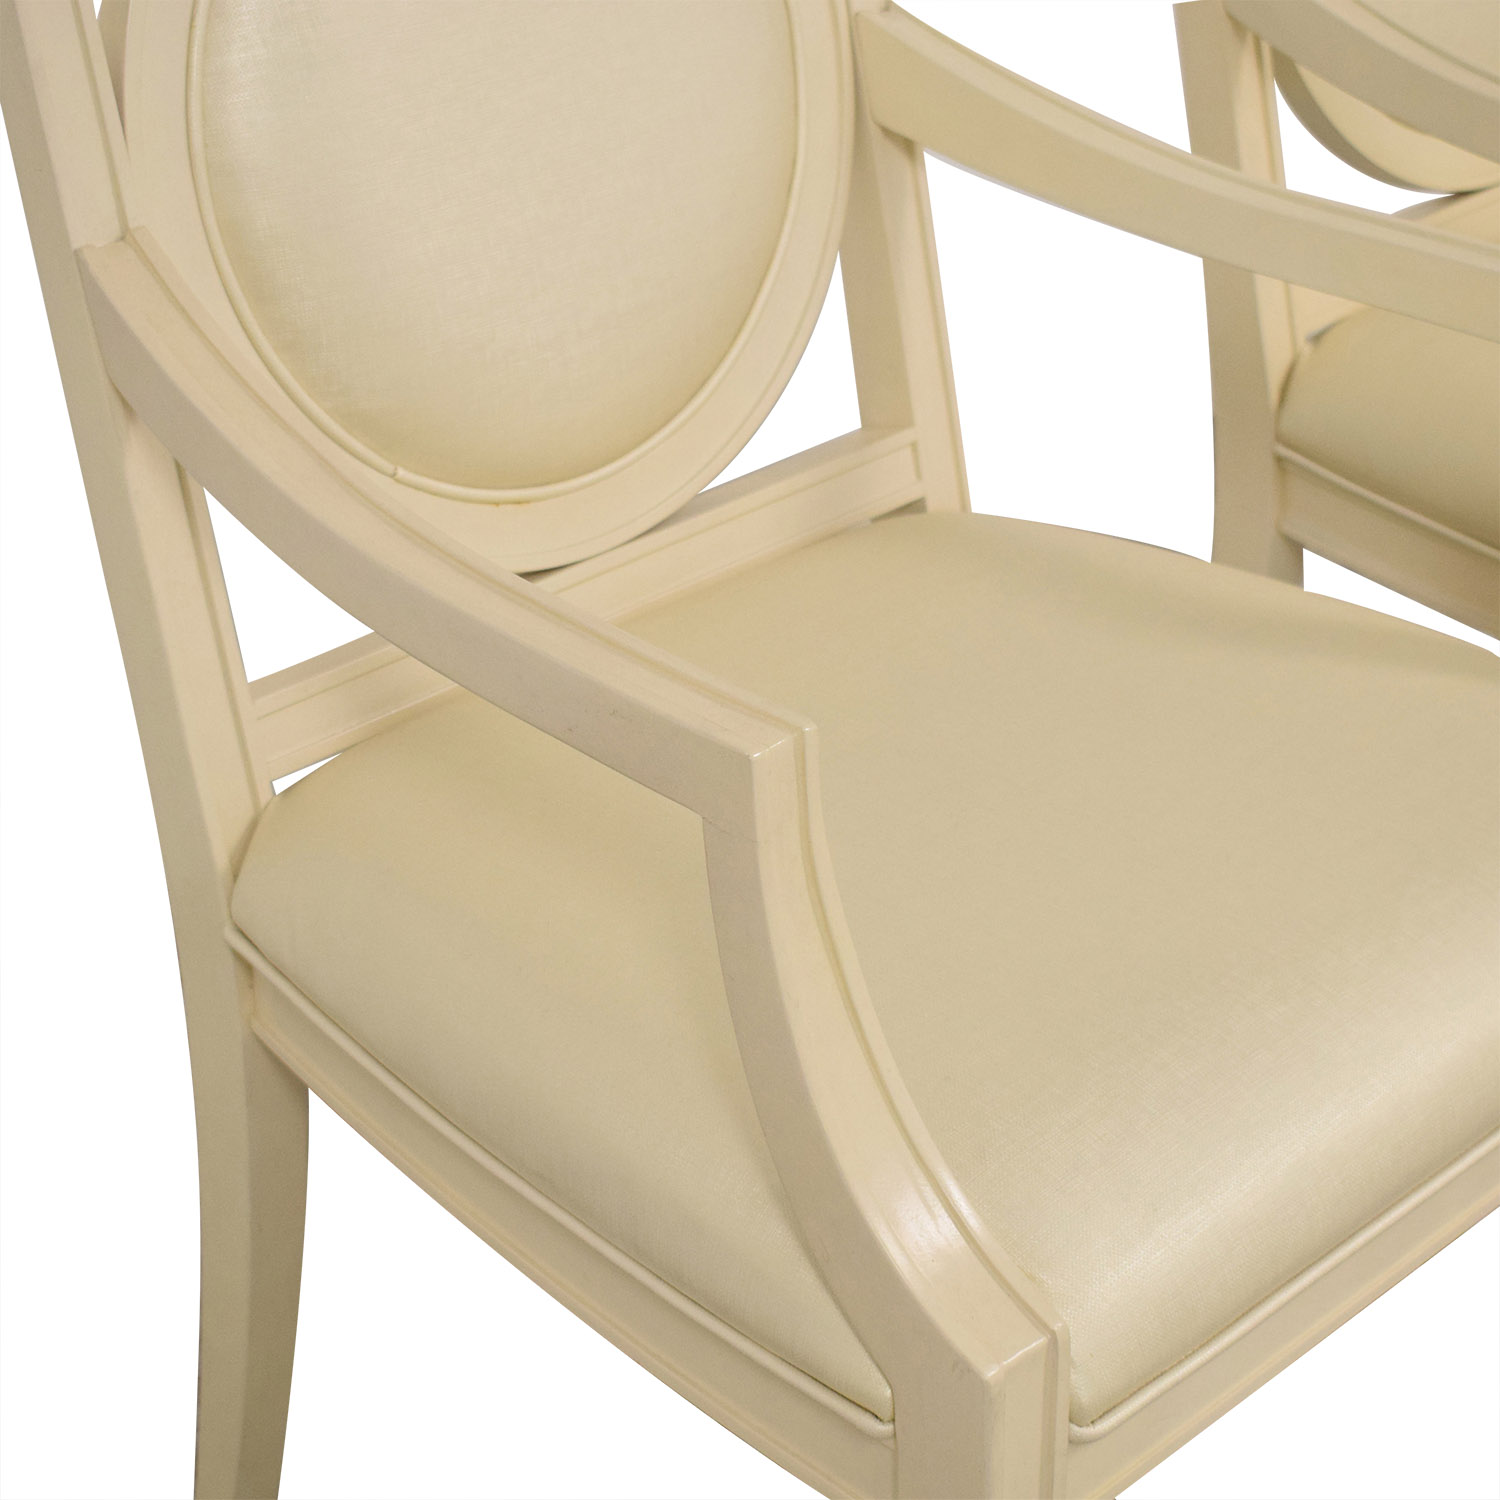 Bernhardt Bernhardt Salon Arm Chairs for sale